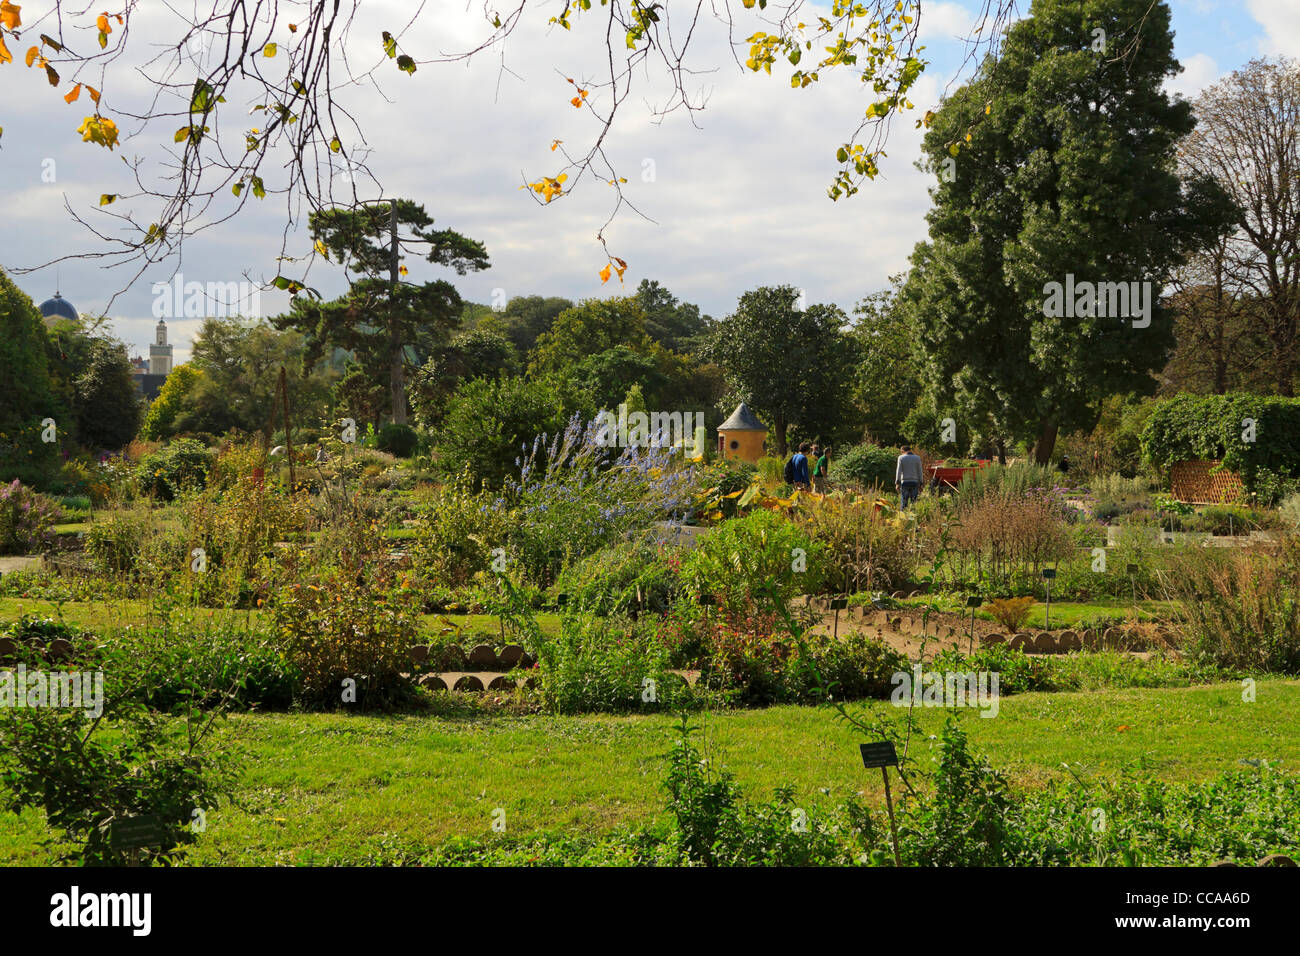 Jardin des plantes paris stock photo royalty free image for Jardin plantes paris